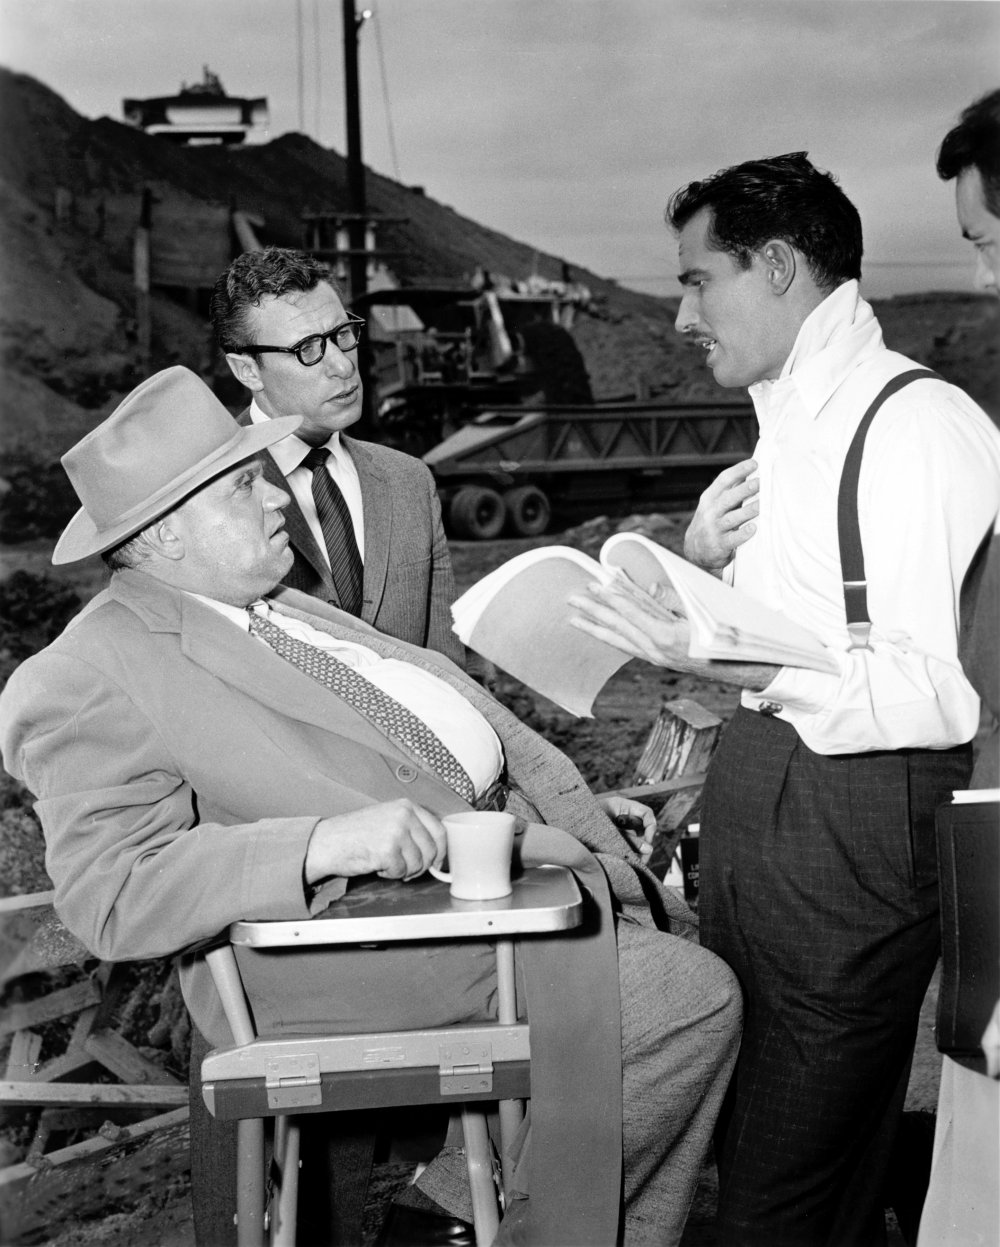 Orson Welles with actors Mort Mills and Charlton Heston during filming of Touch of Evil (1958)